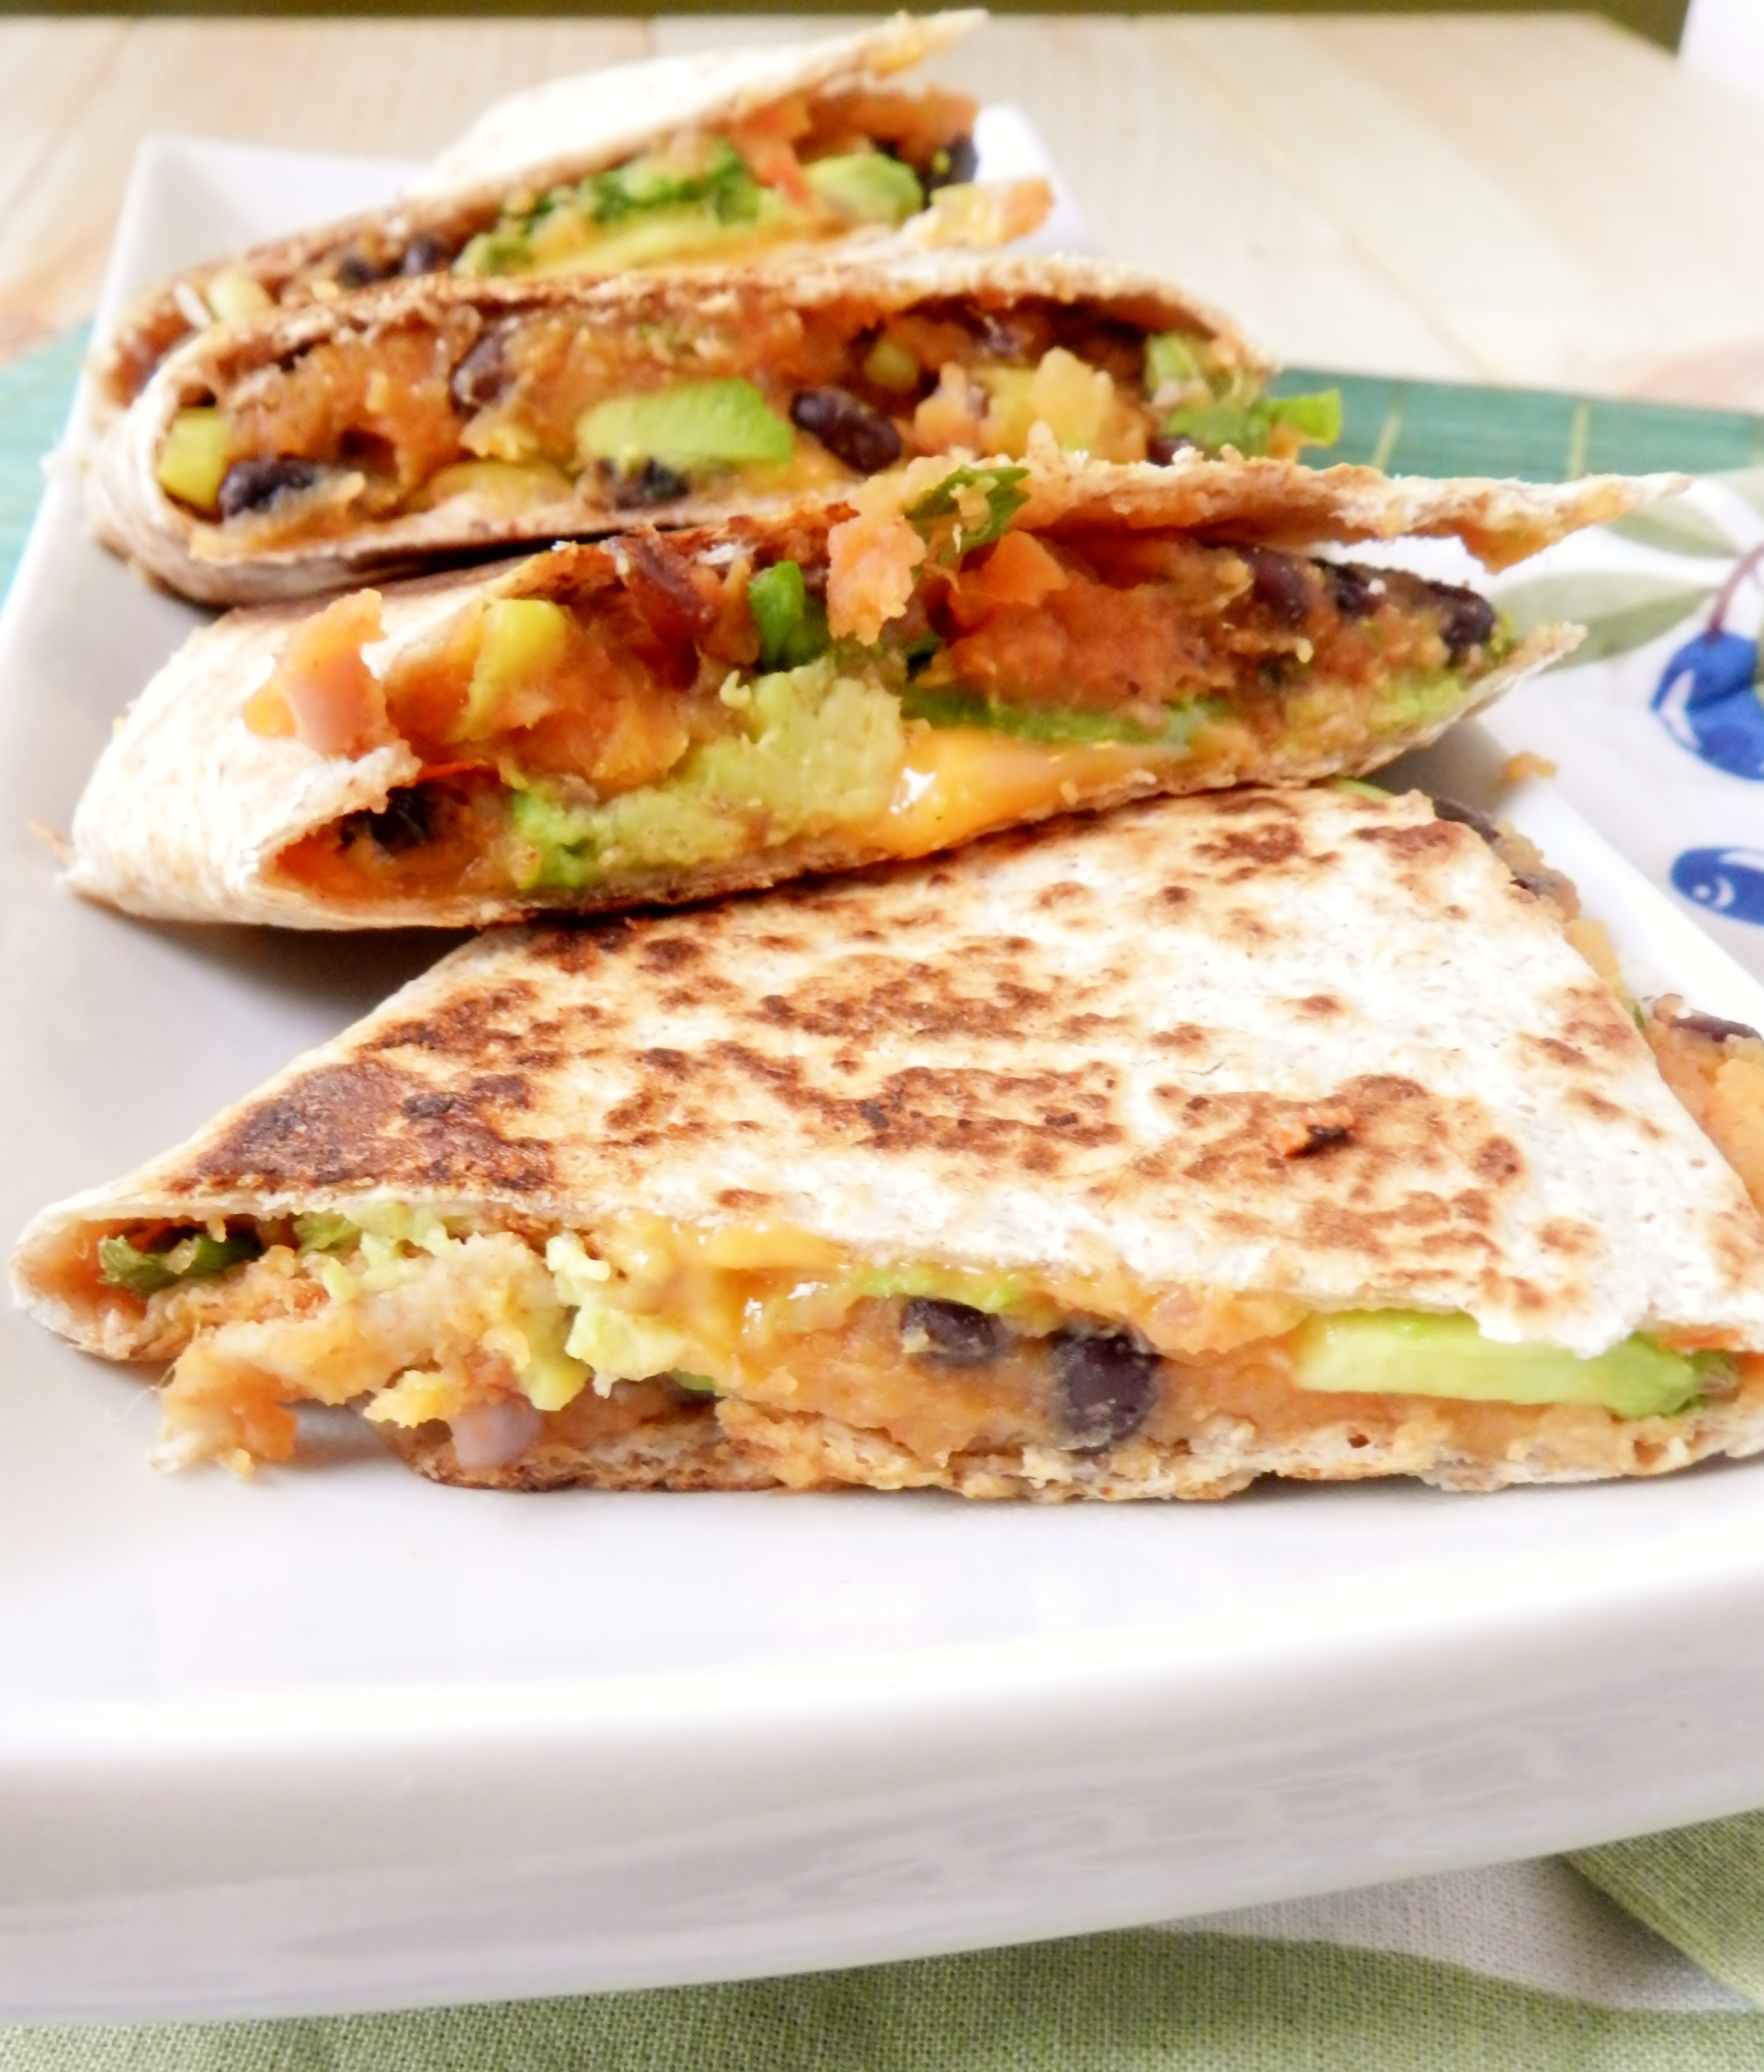 But not just any quesadillas, these ones are sweet potato black bean ...